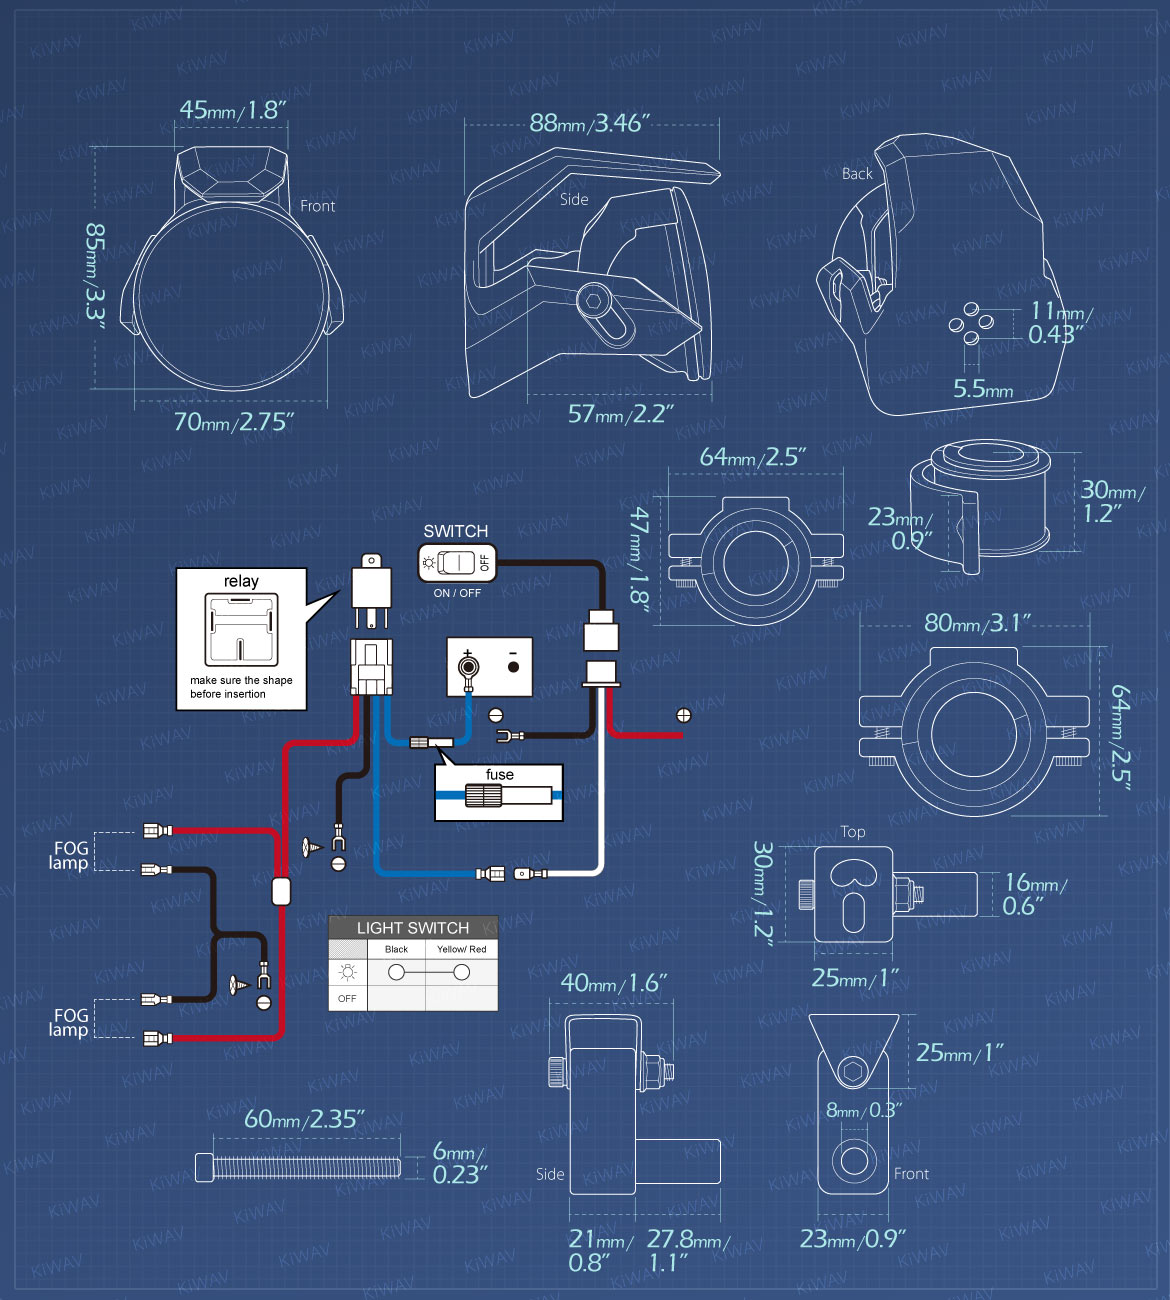 Measurement of KiWAV motorcycle 2.75 inch 12V 55W round driving light with wiring kits